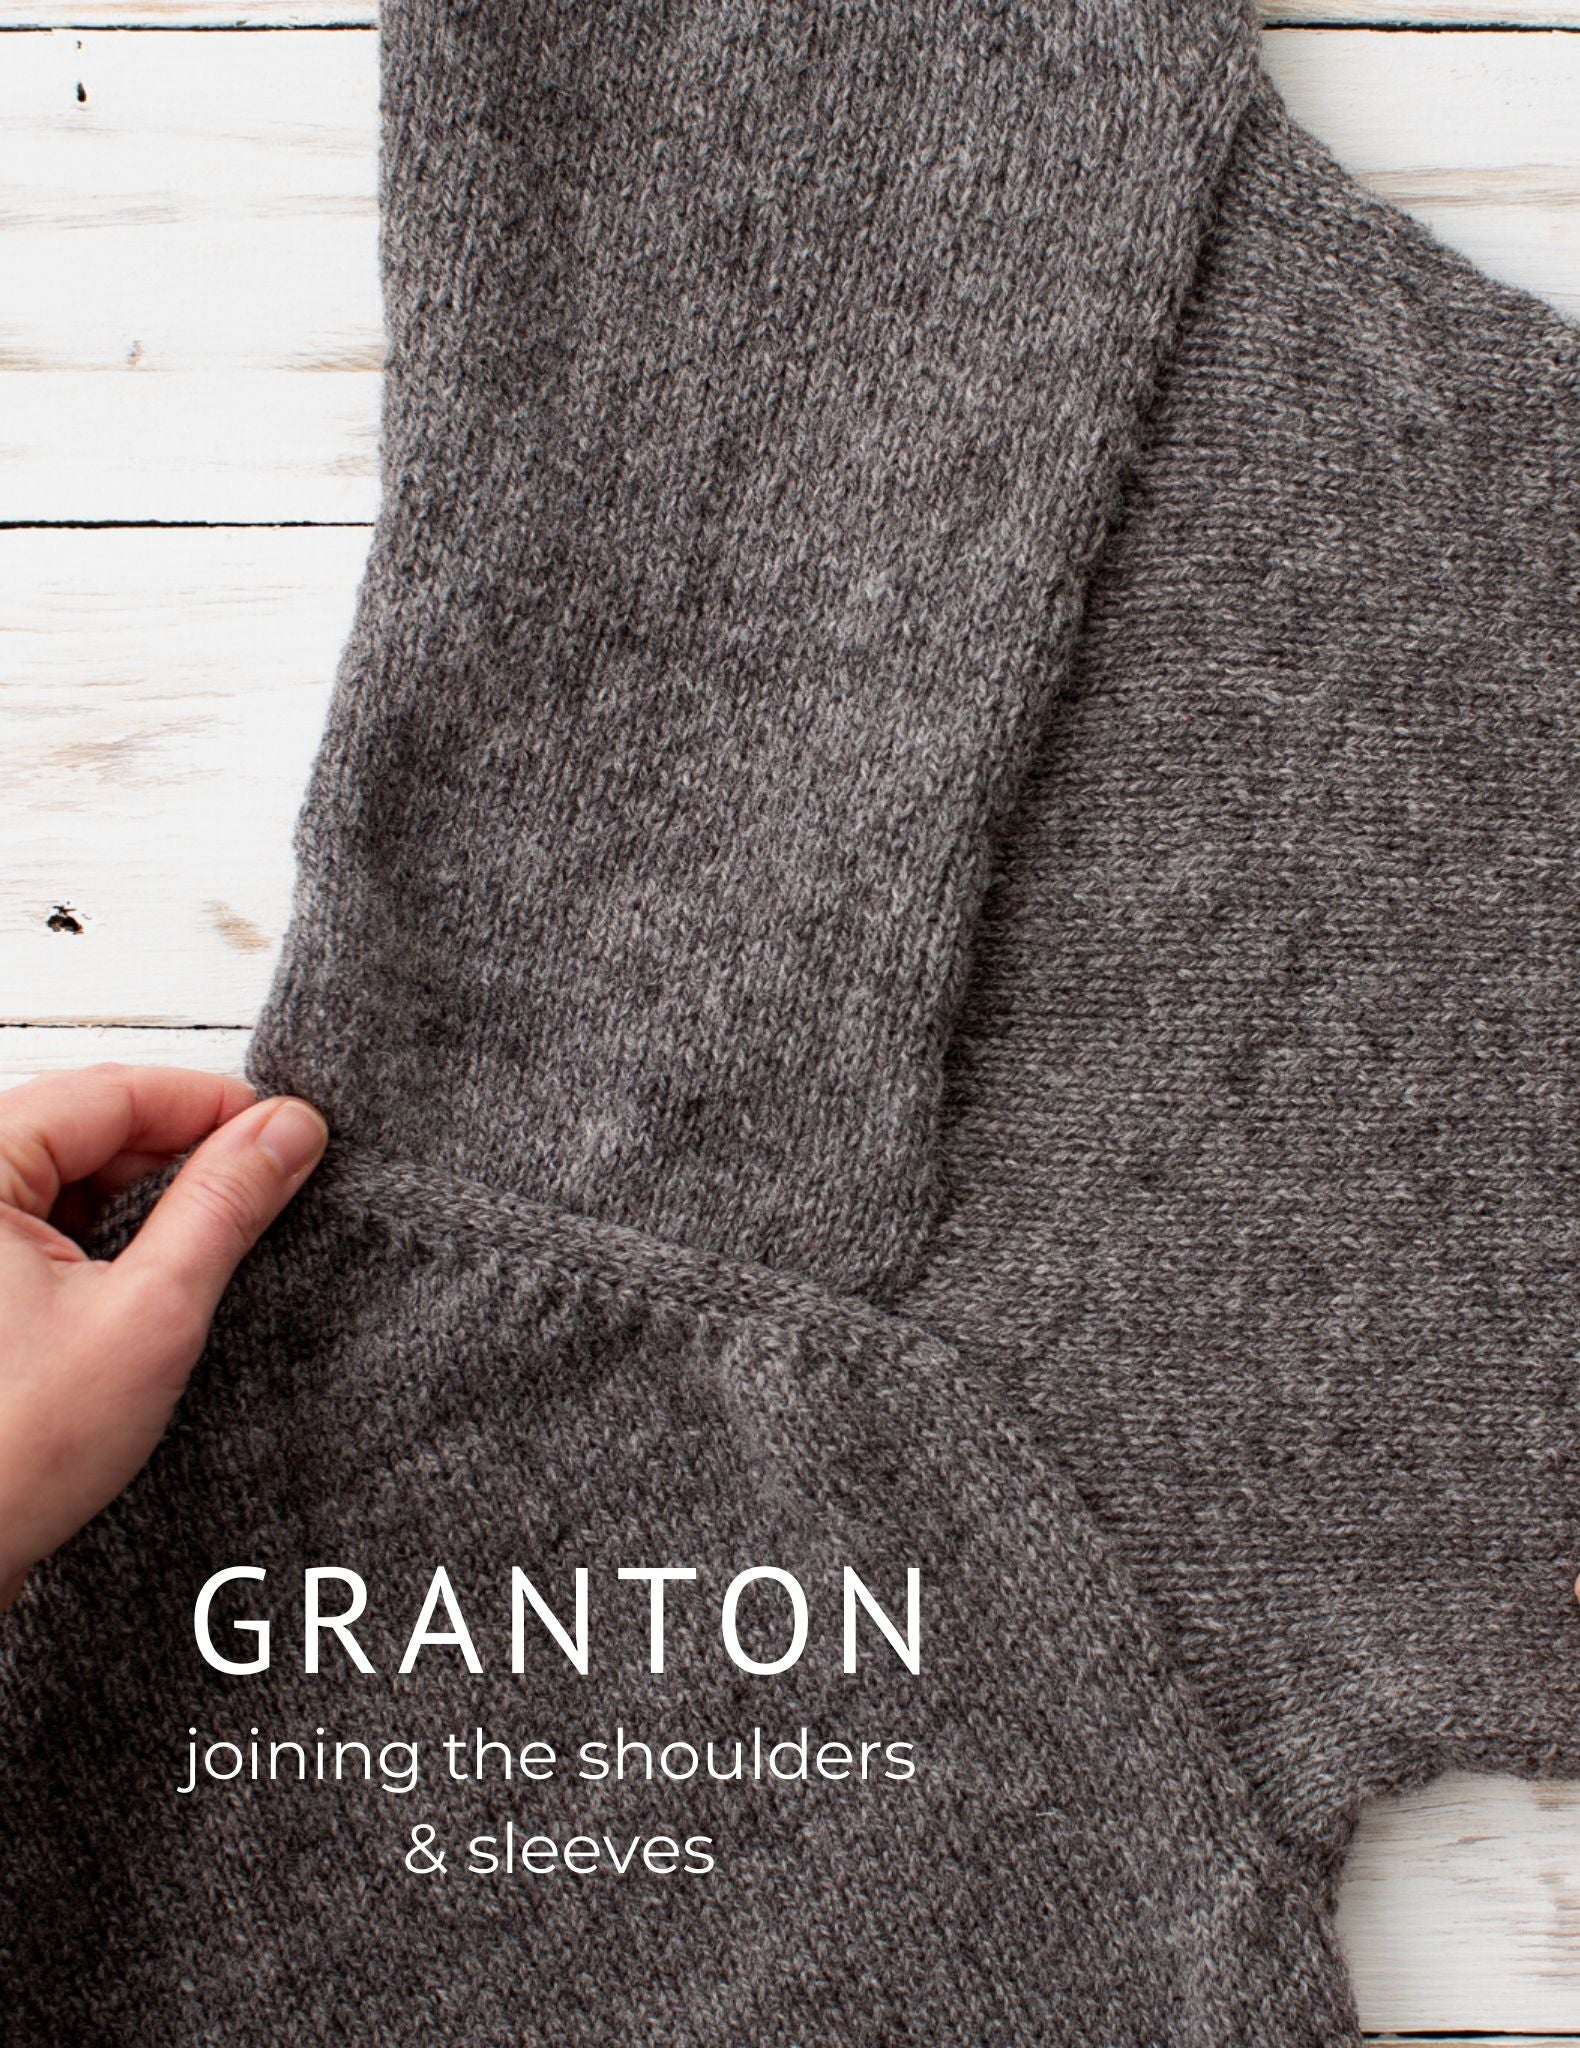 Granton - Joining the Shoulders and Sleeves